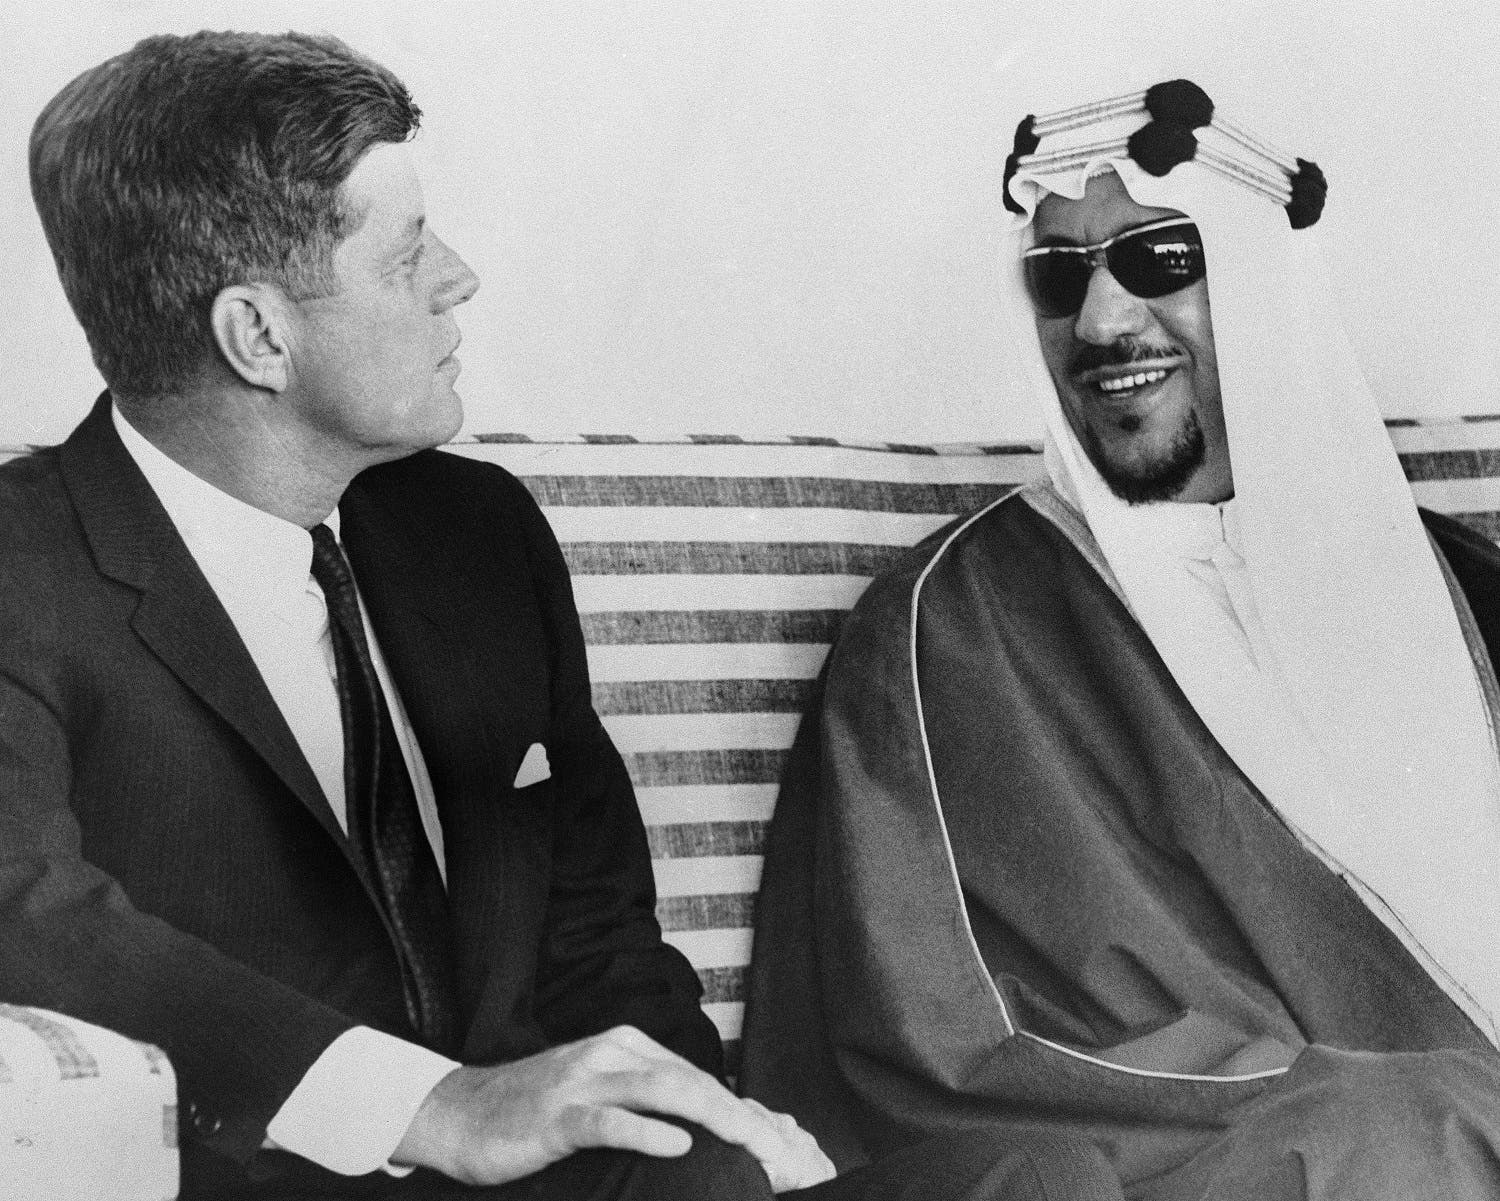 President John F. Kennedy and King Saud of Saudi Arabia, have informal talk on the patio of King Saud's ocean front mansion in Palm Beach, Florida Jan. 27, 1962. (File Photo: AP)